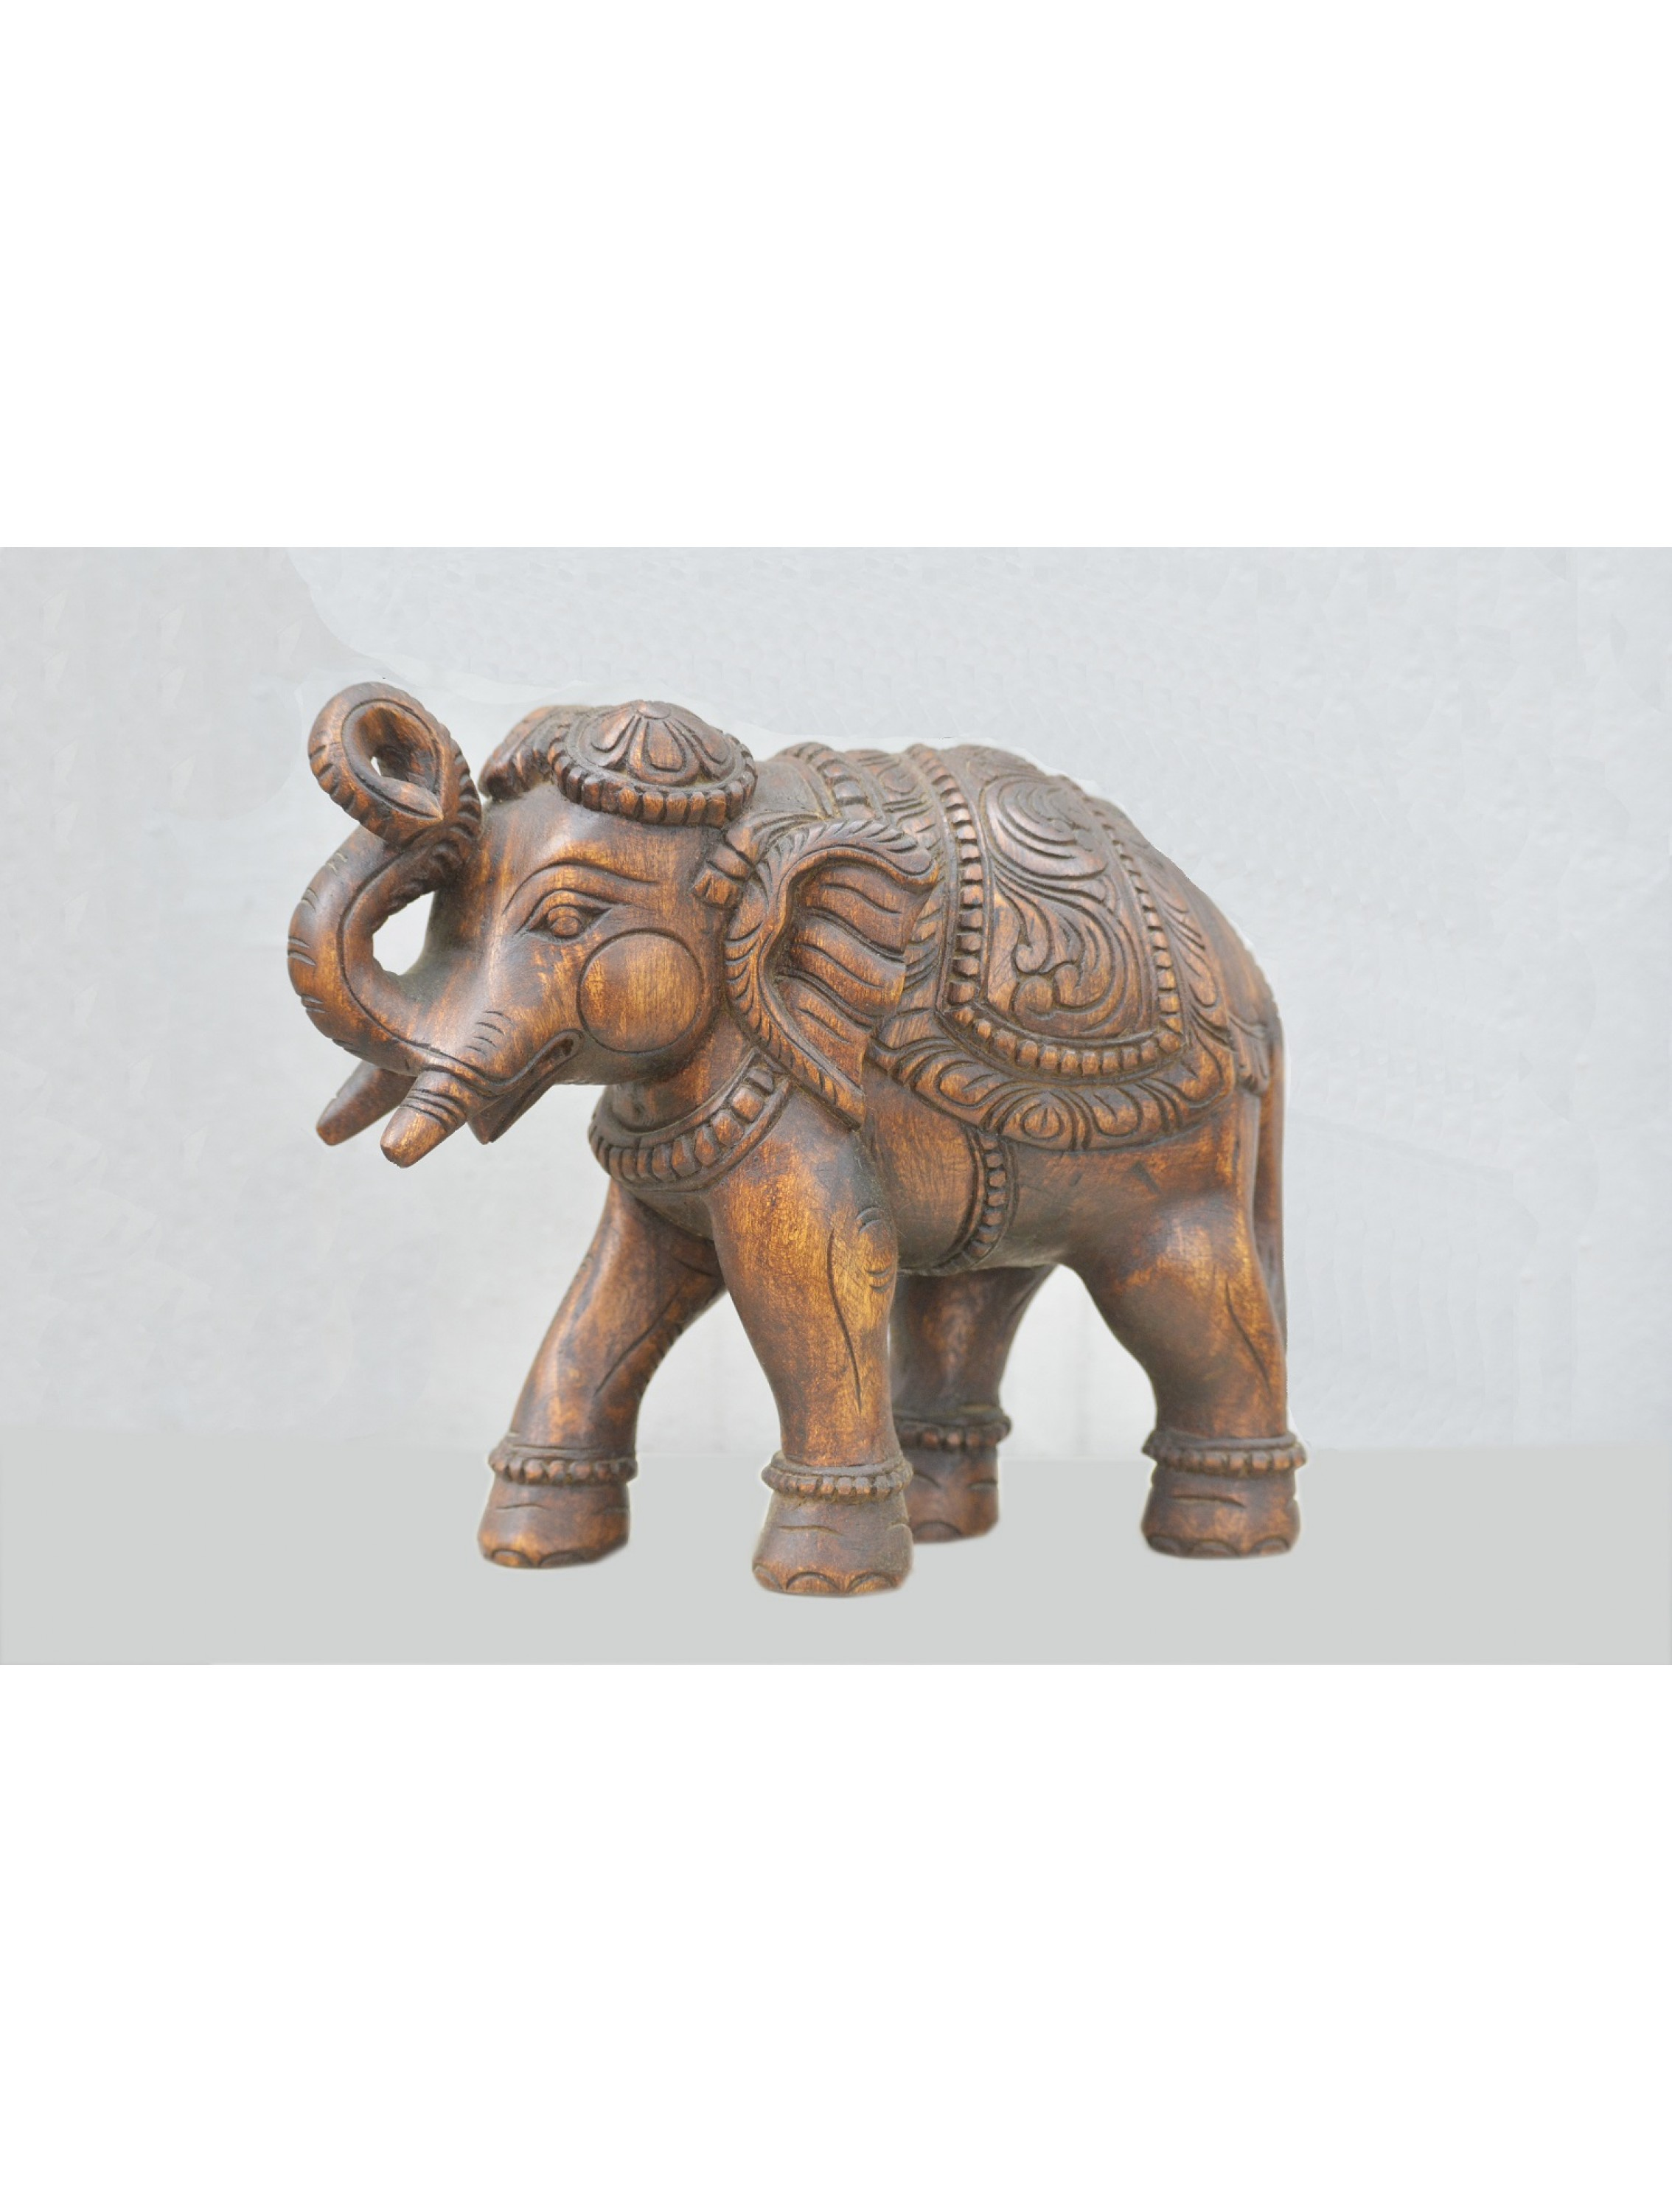 Lift Trunk Elephant Wooden Sculpture